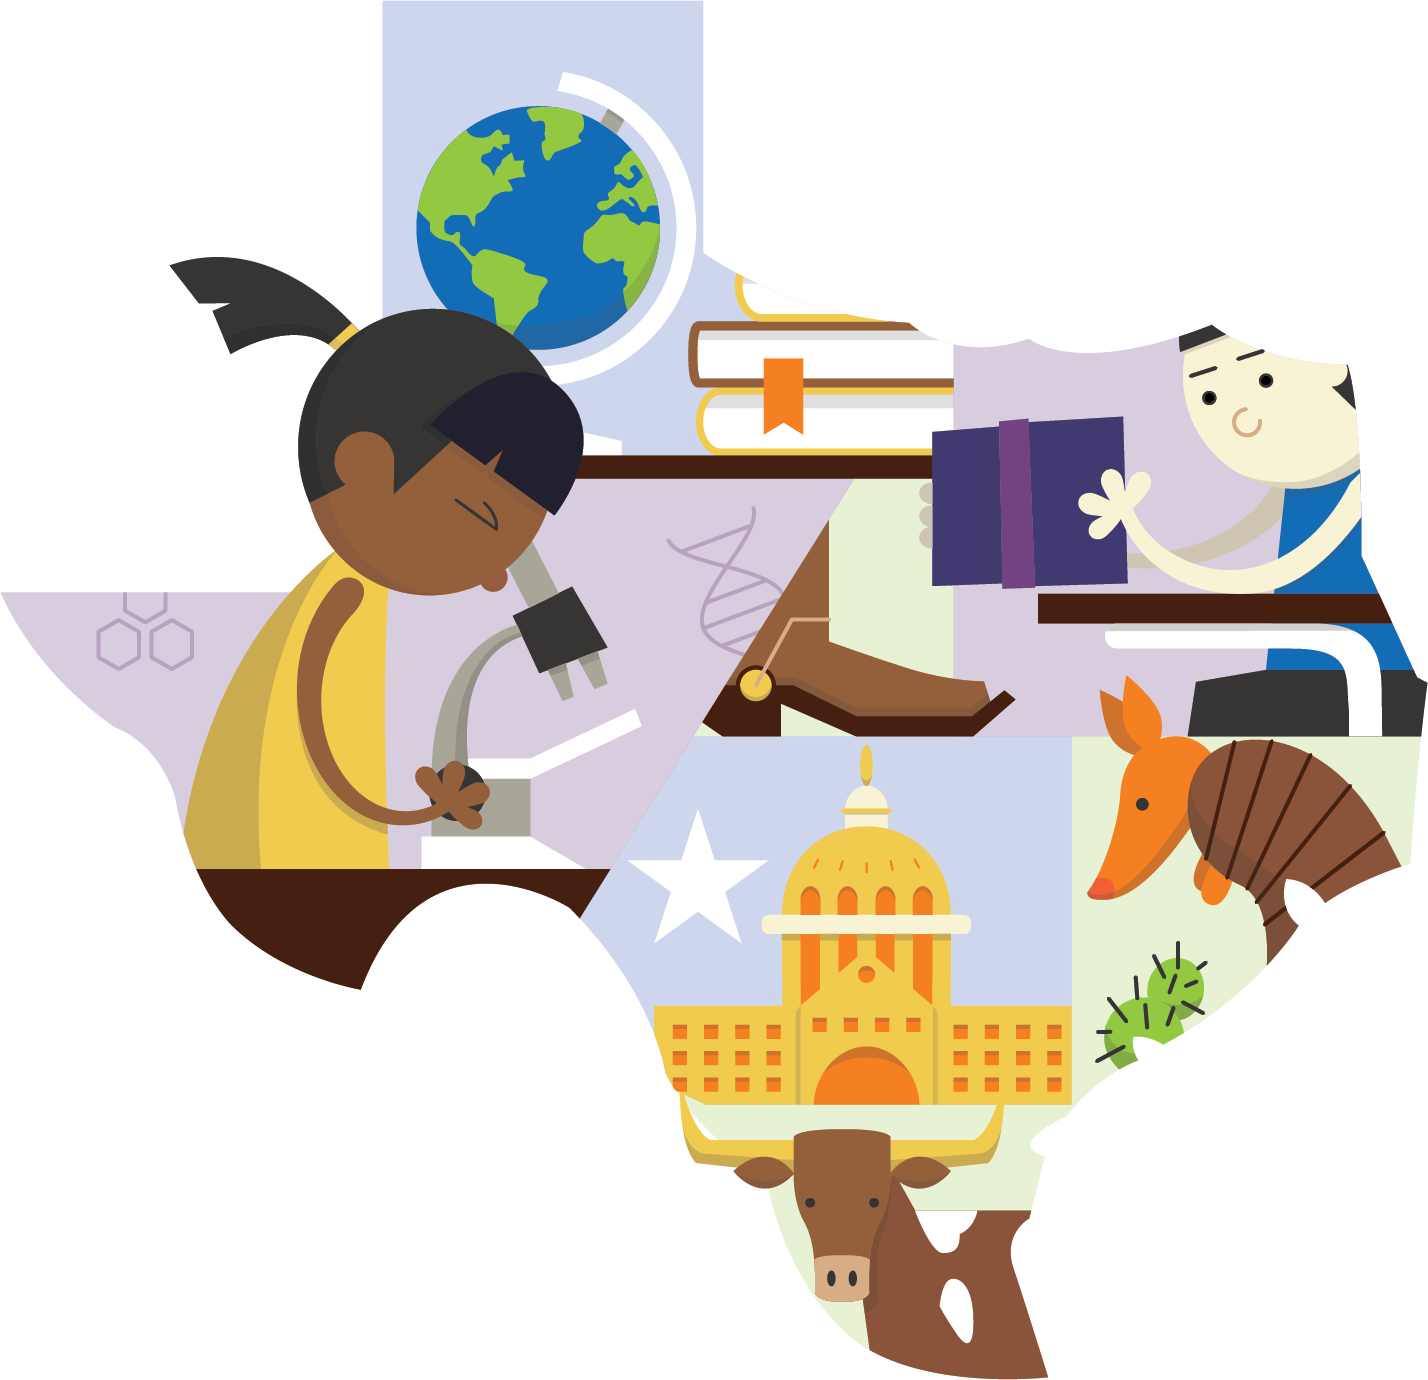 TEA state outline with microscope, globe, boots, books, armadillo, capitol building, long horn, star, desk and cactus